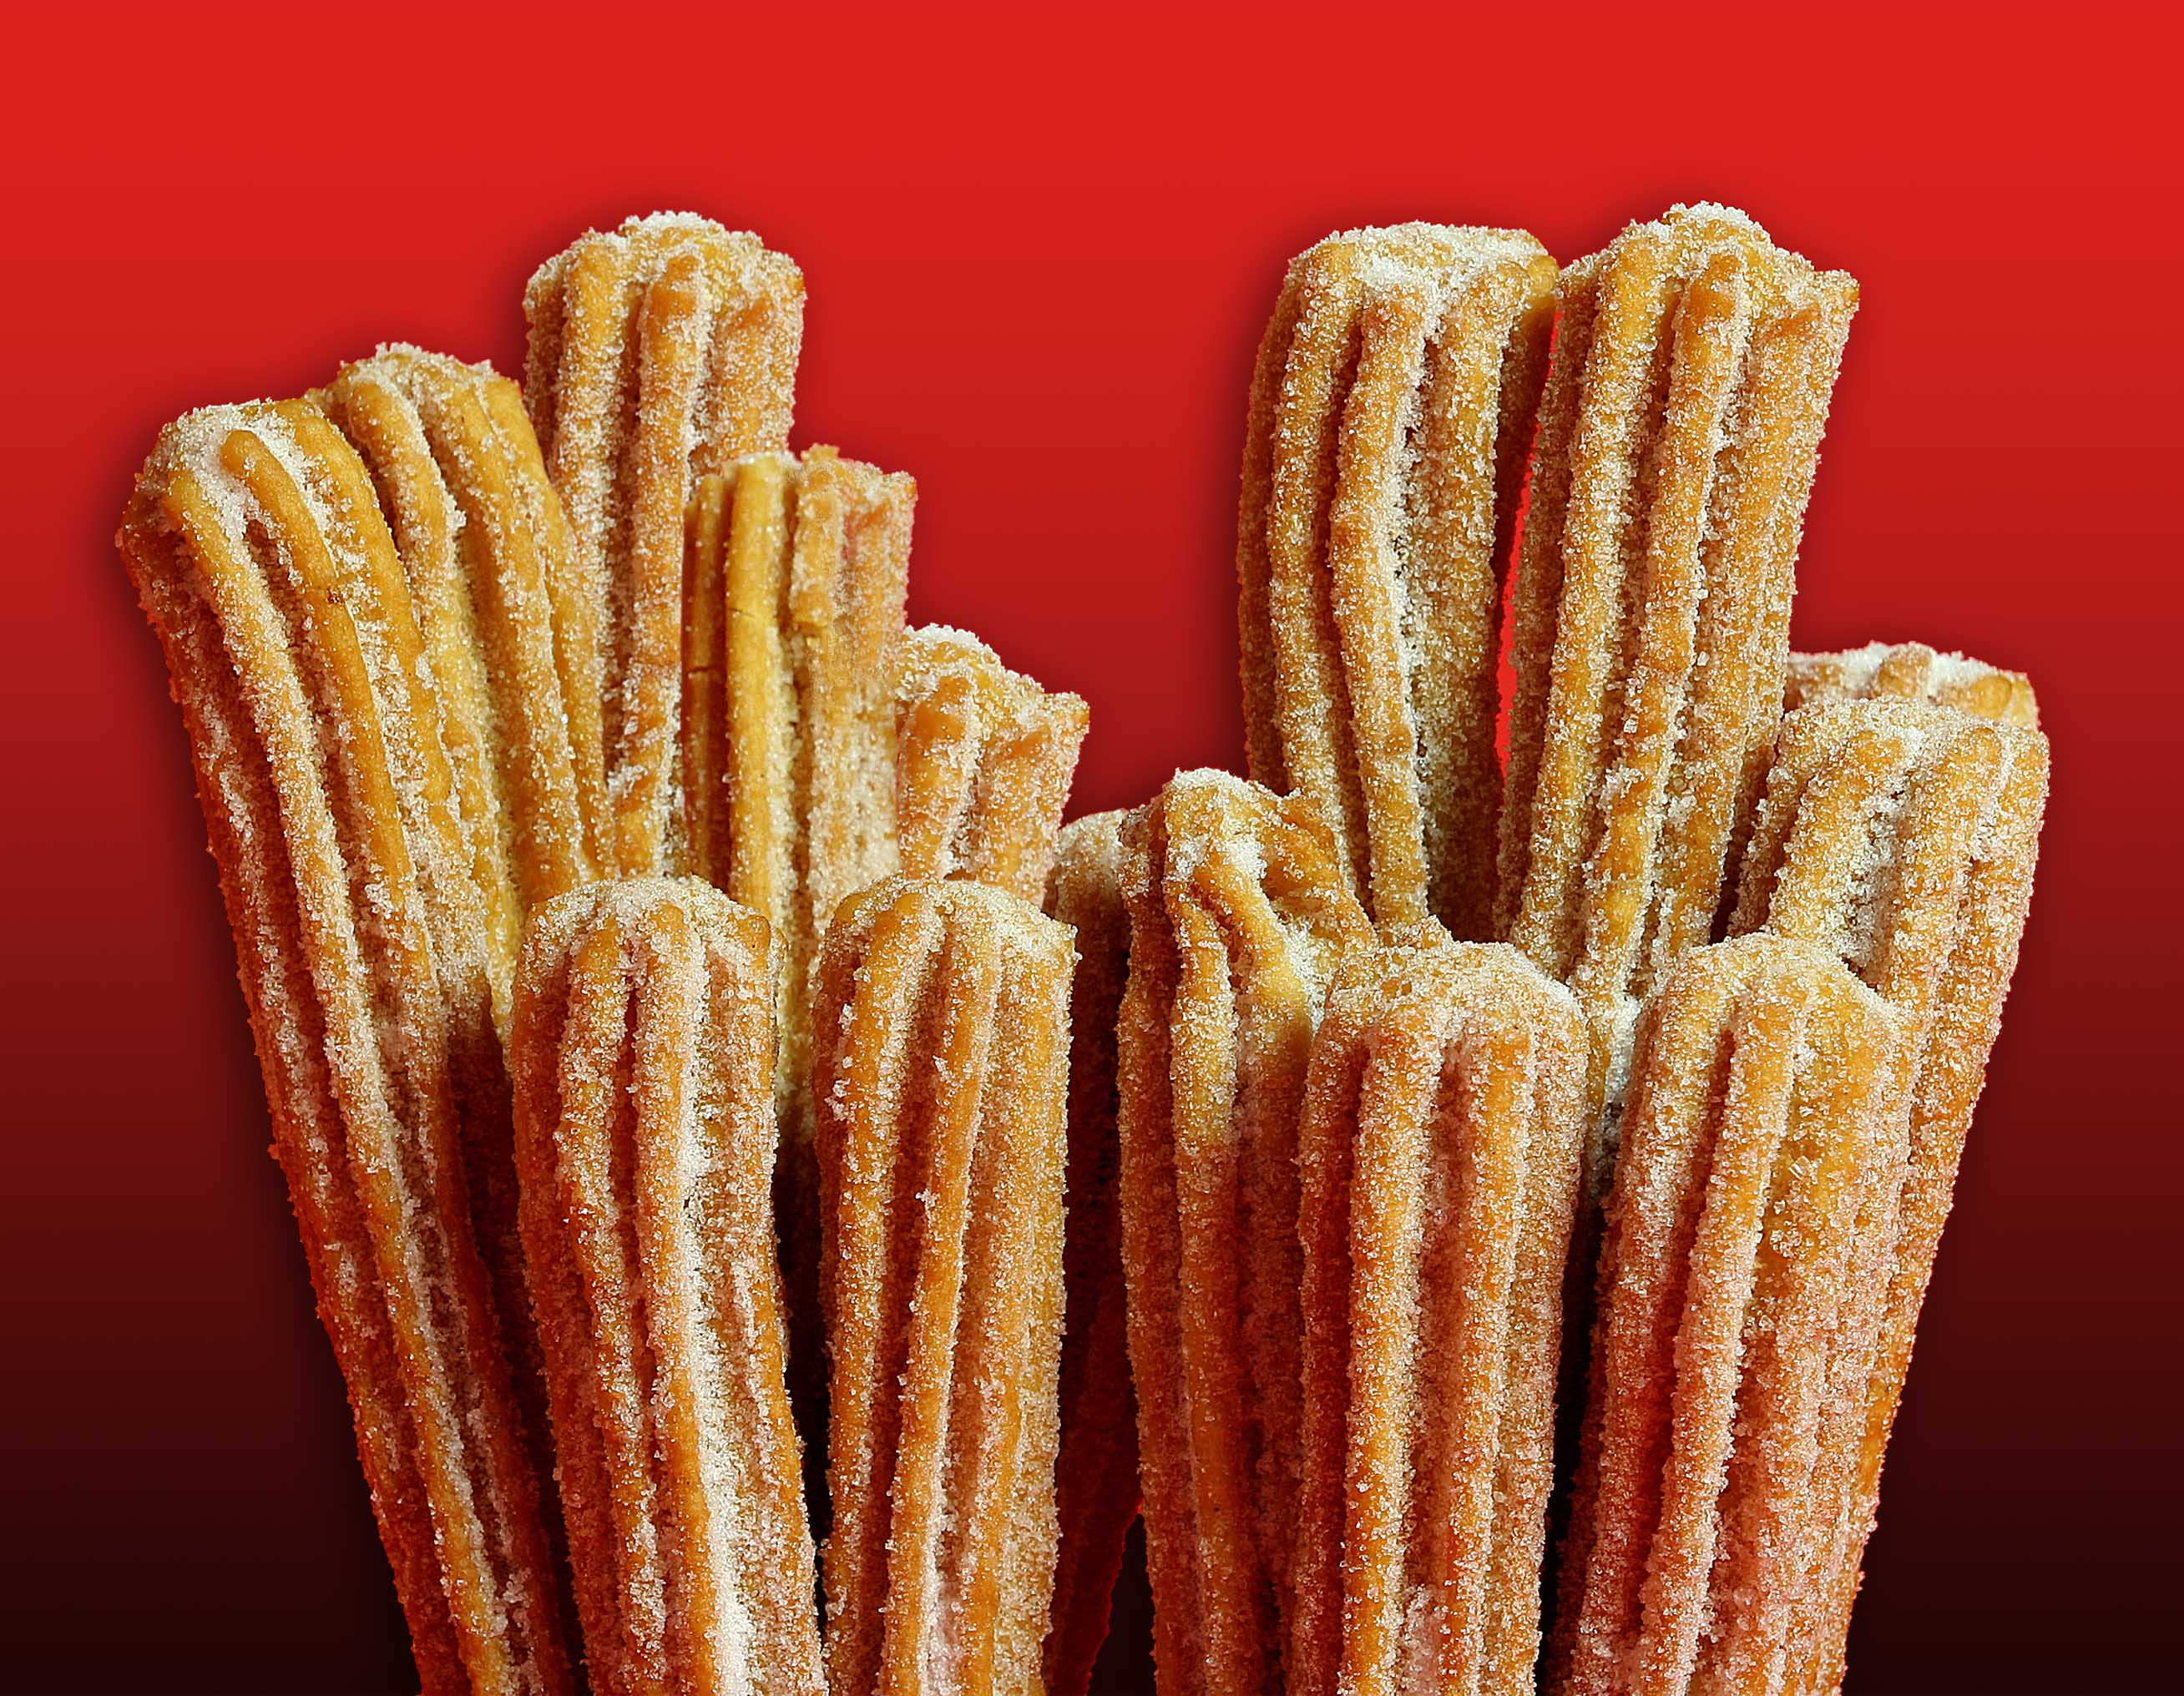 Churritos l'originale!